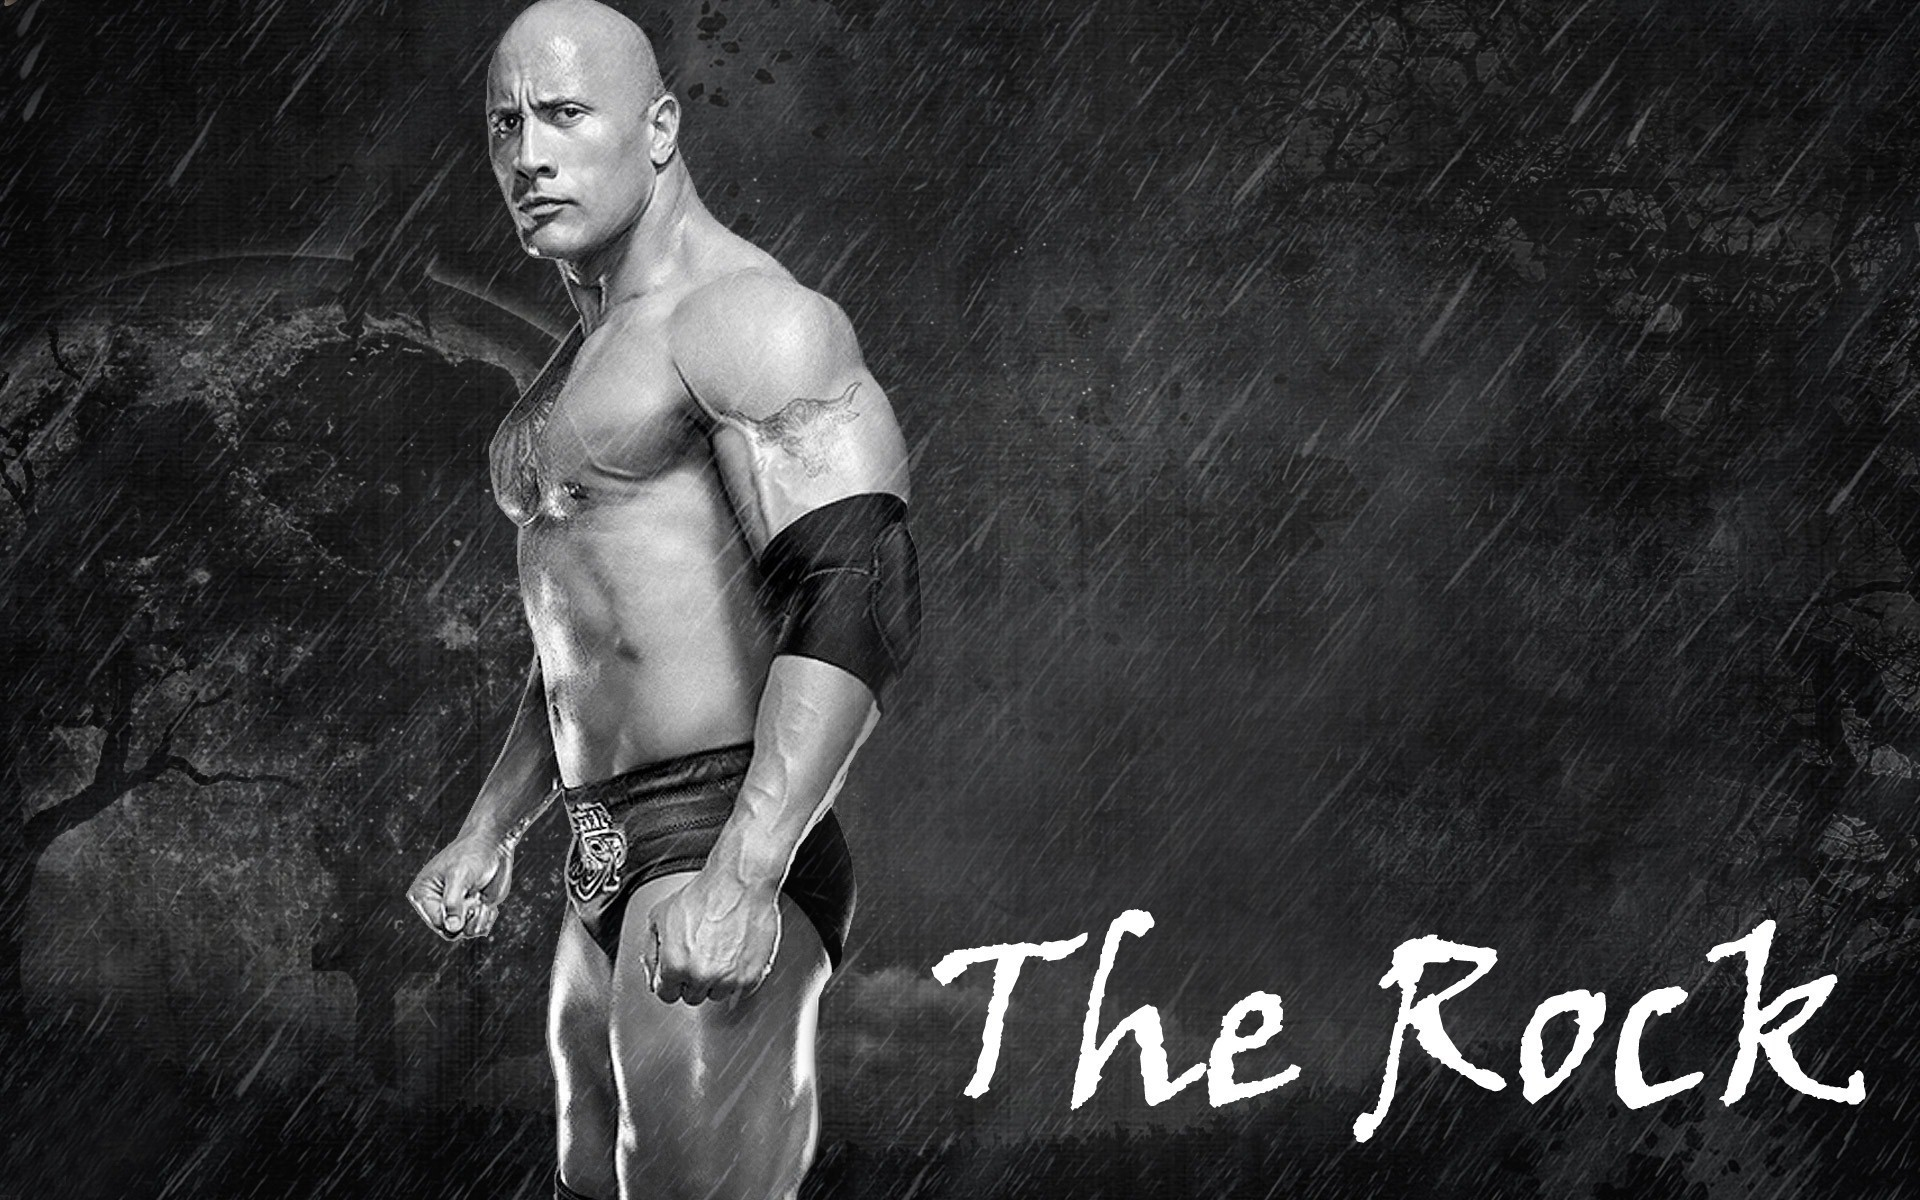 the rock new hd wallpaper